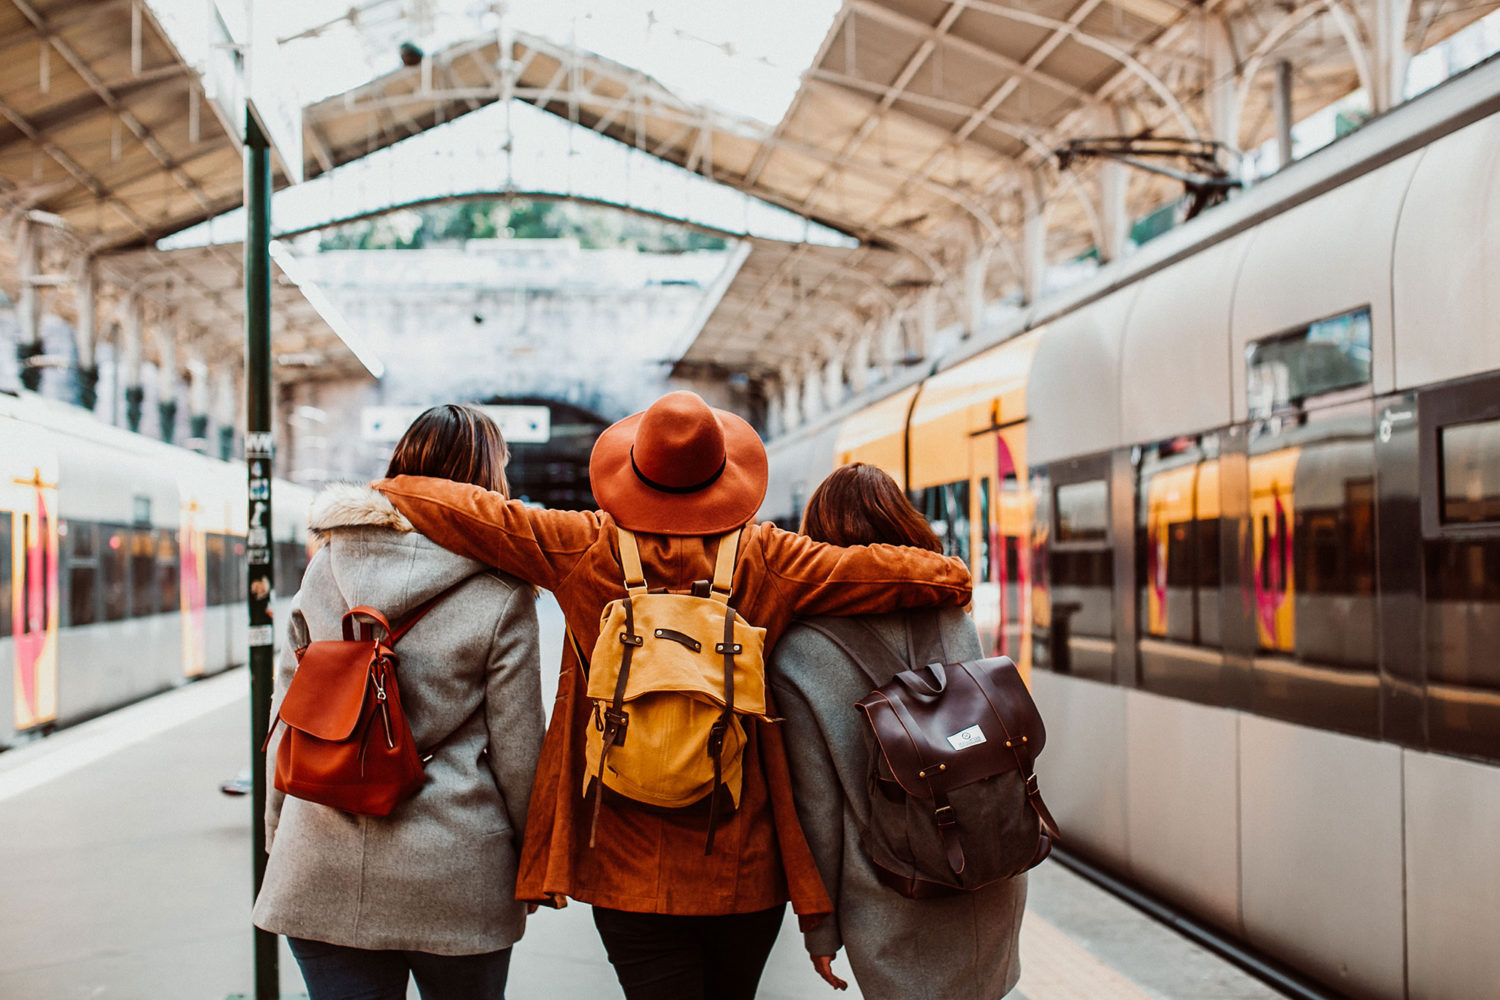 Three women with backpacks walking on a train platform with trains on both sides